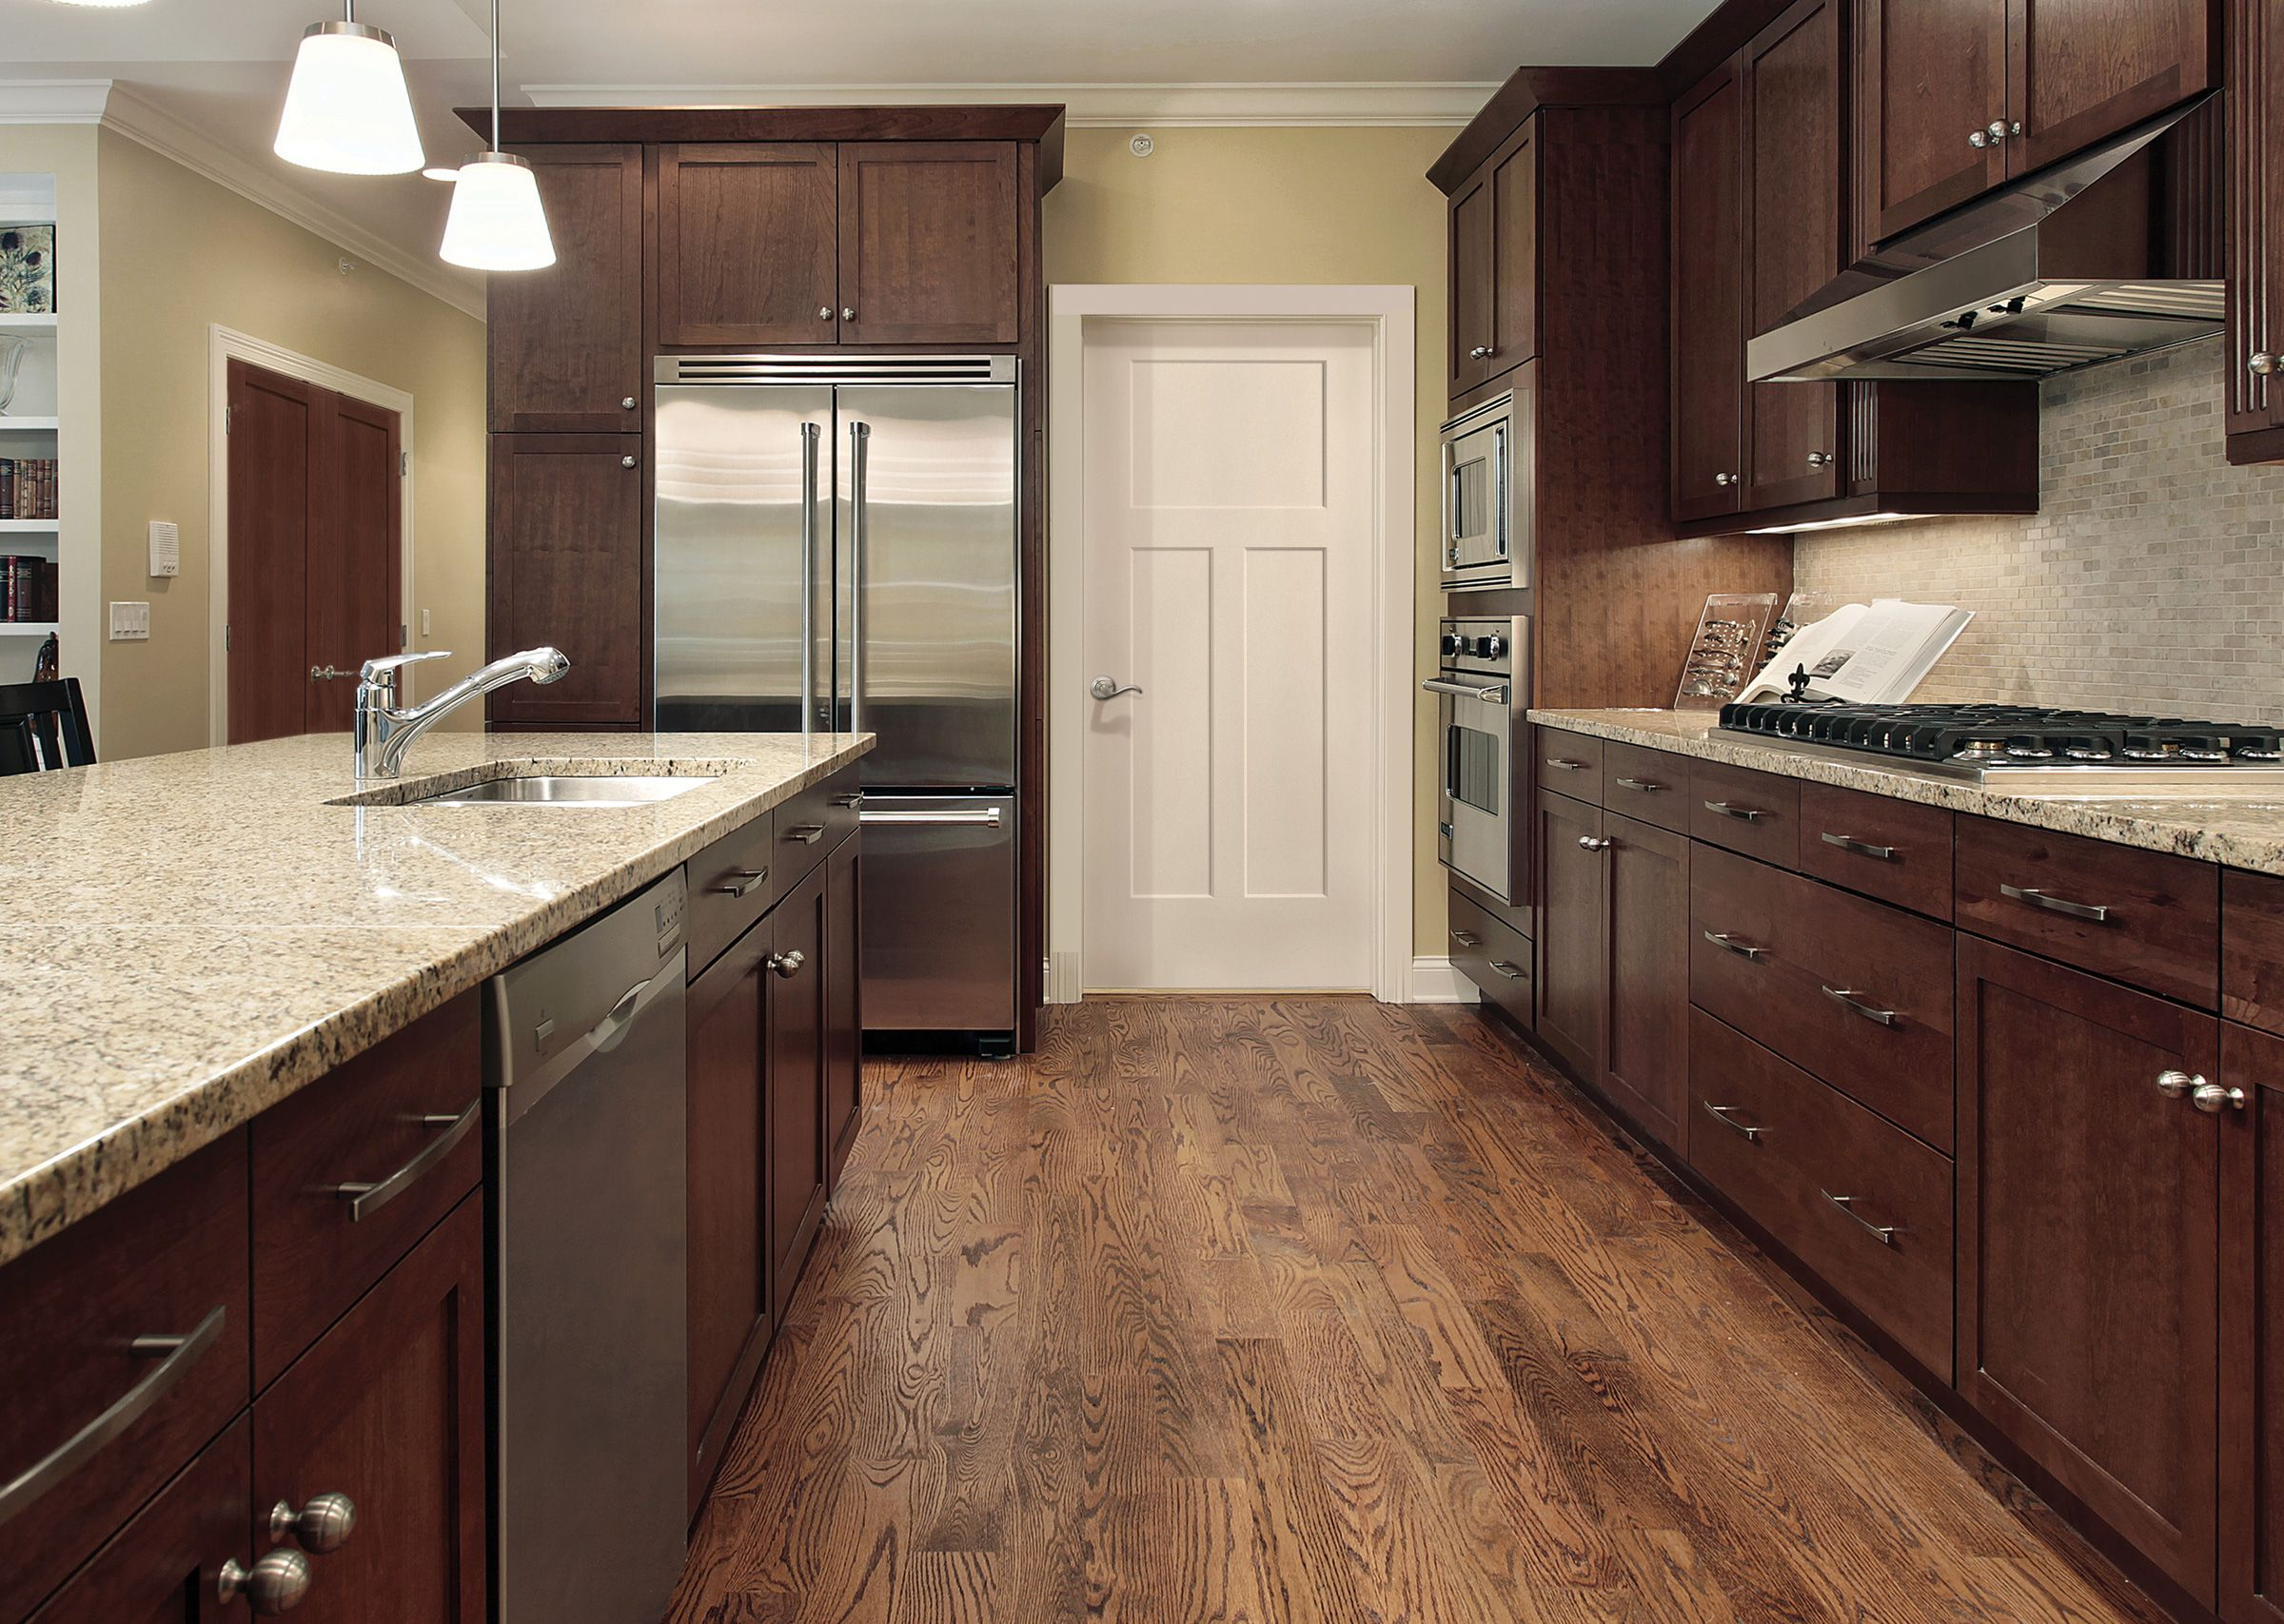 Winslow 3 Panel Shaker Molded Doors From Masonite Brown Kitchen Cabinets Wood Floor Kitchen Walnut Kitchen